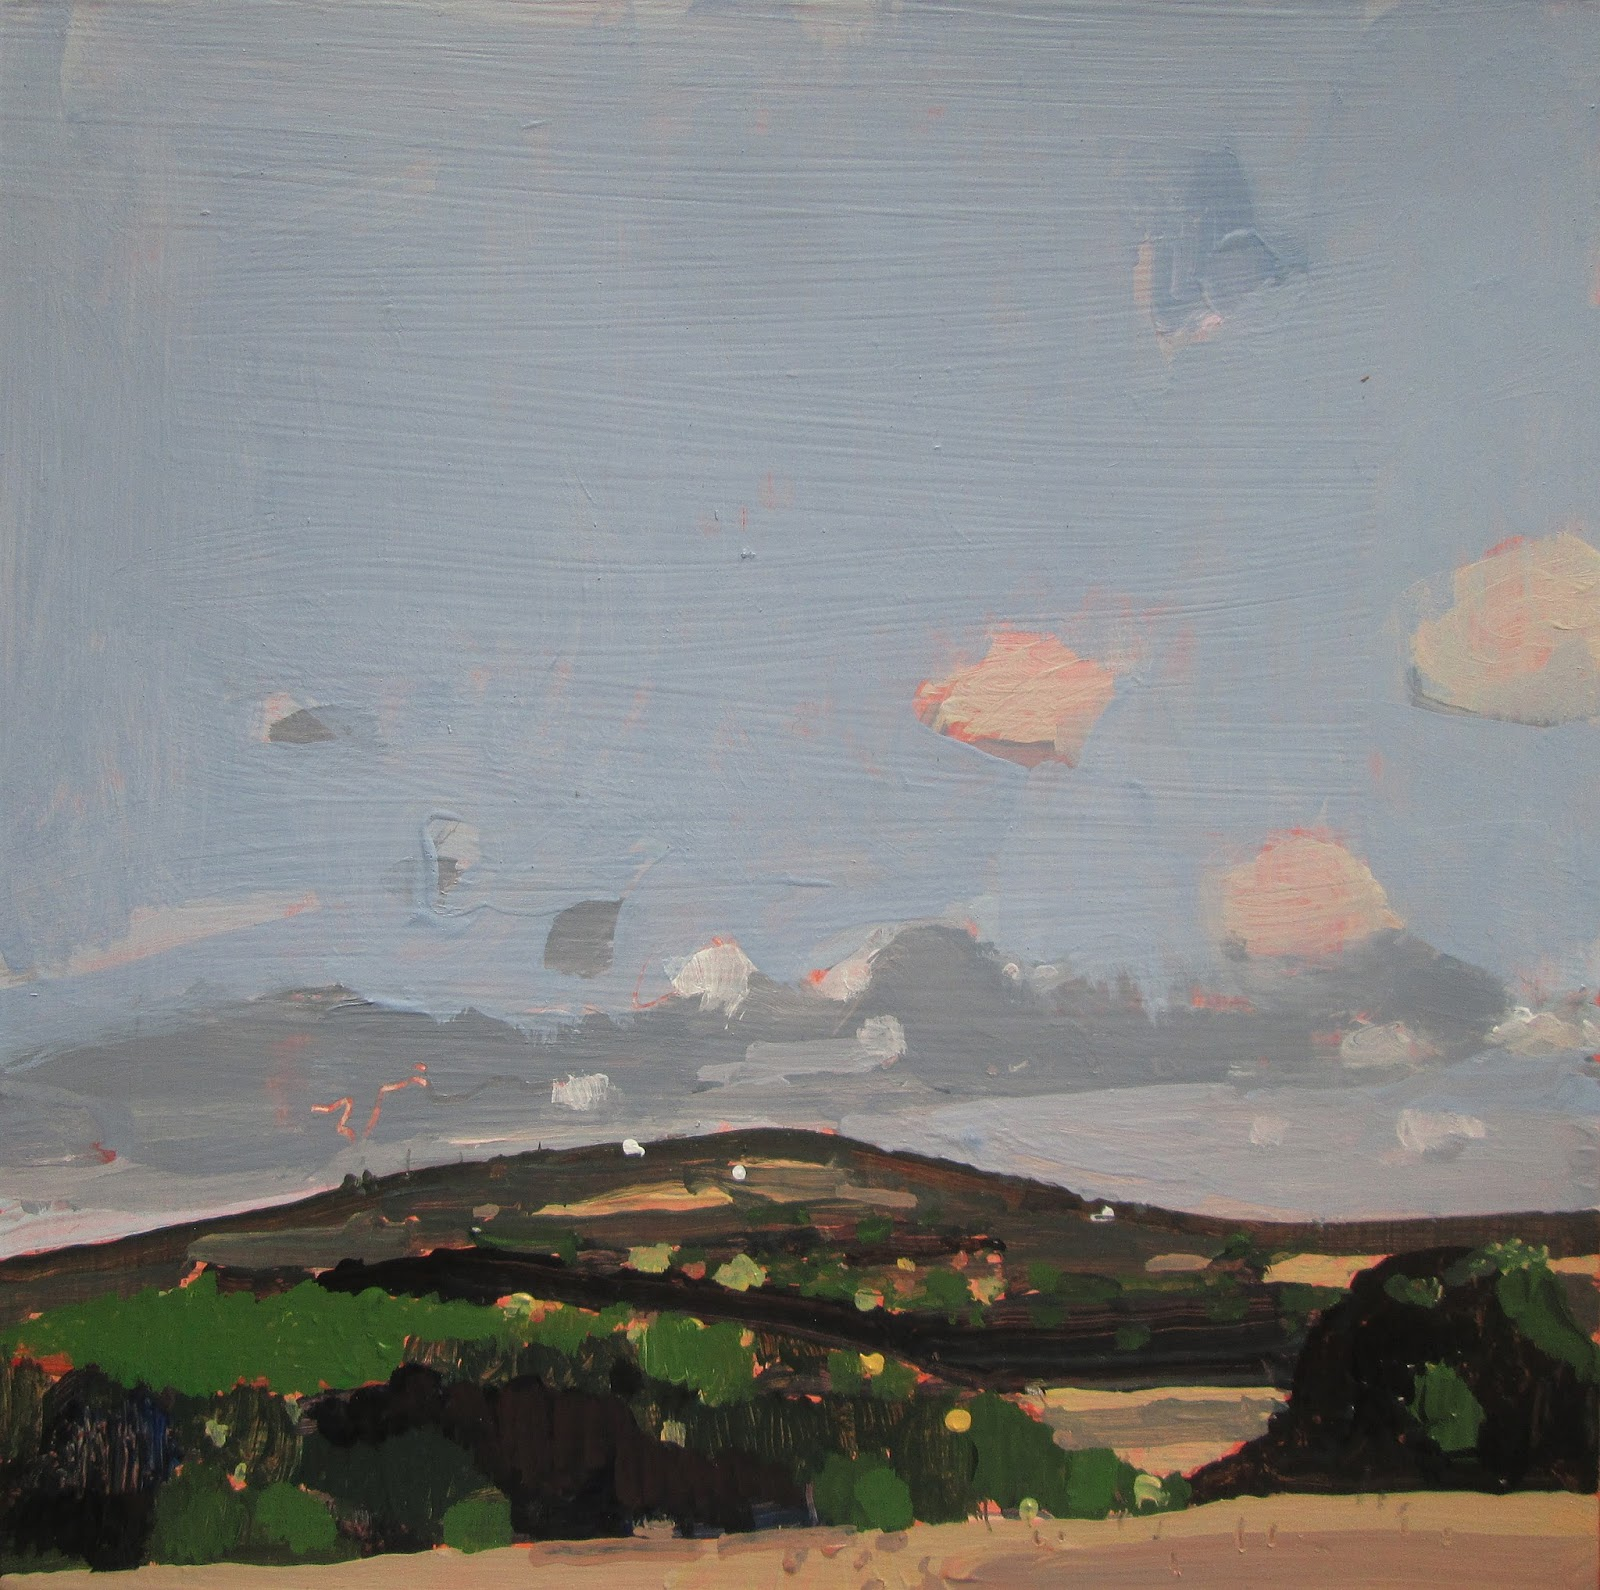 Landscape PaintingsHarry Stooshinoff October 2016